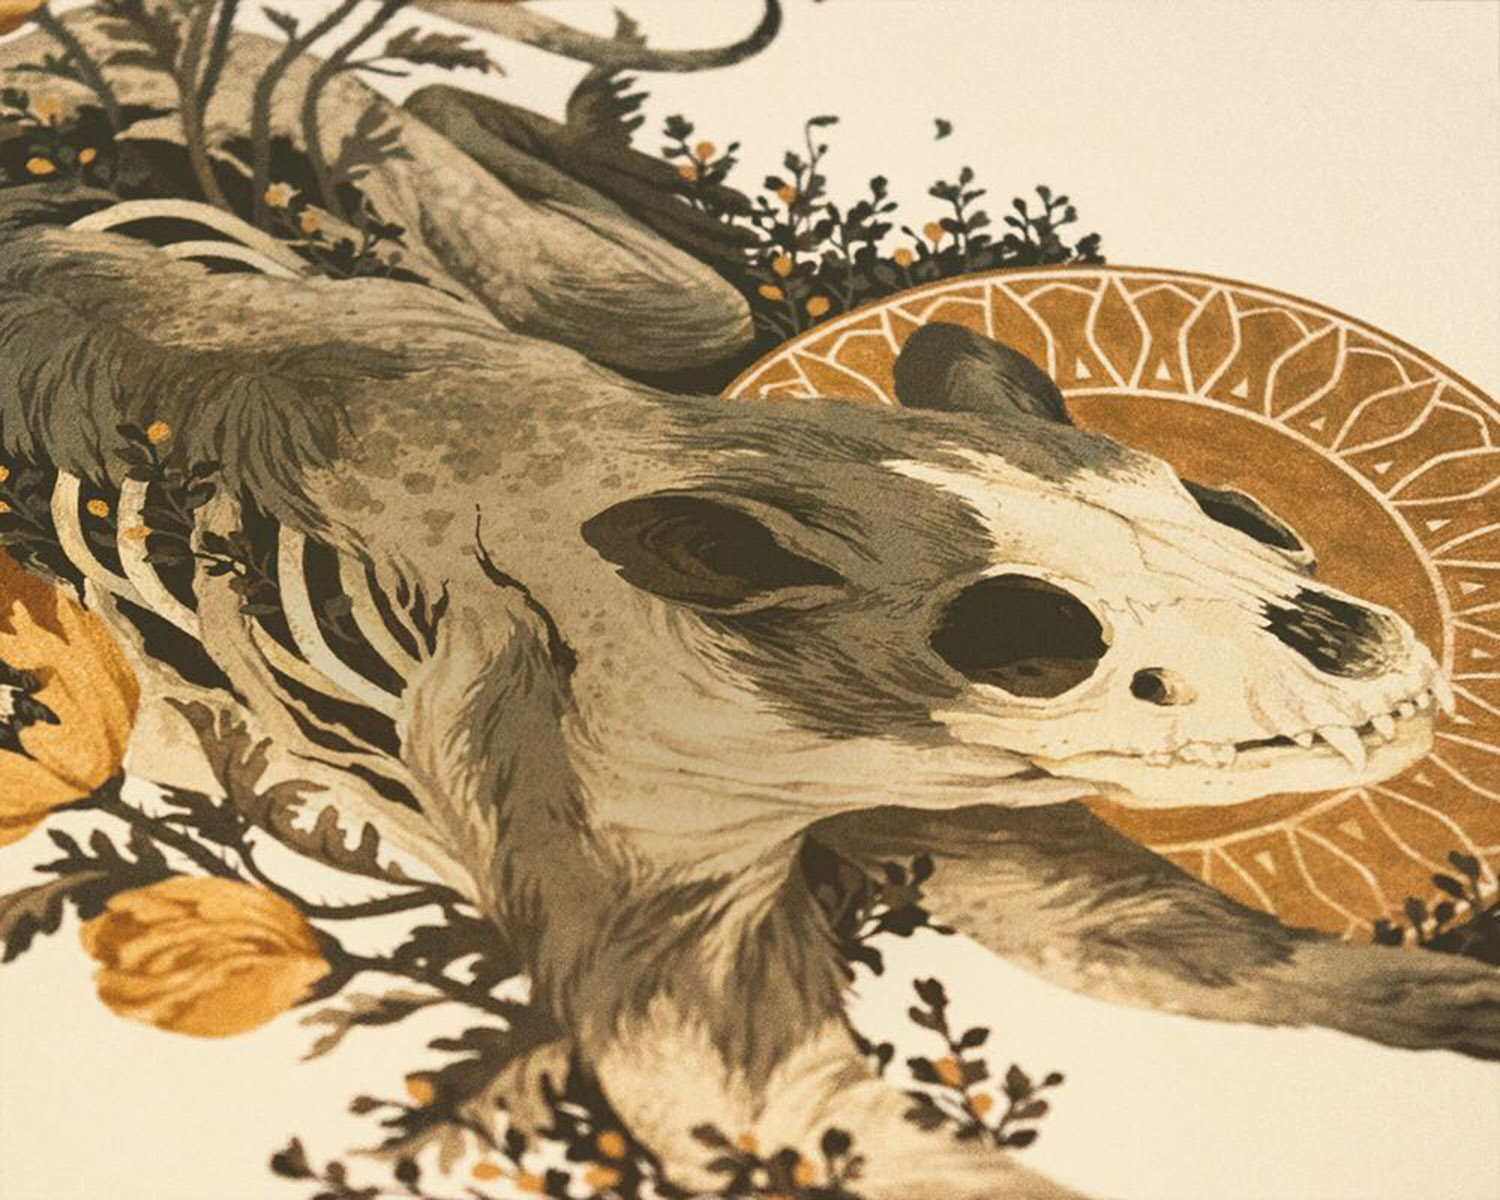 Detail view of partial animal skull with flowers